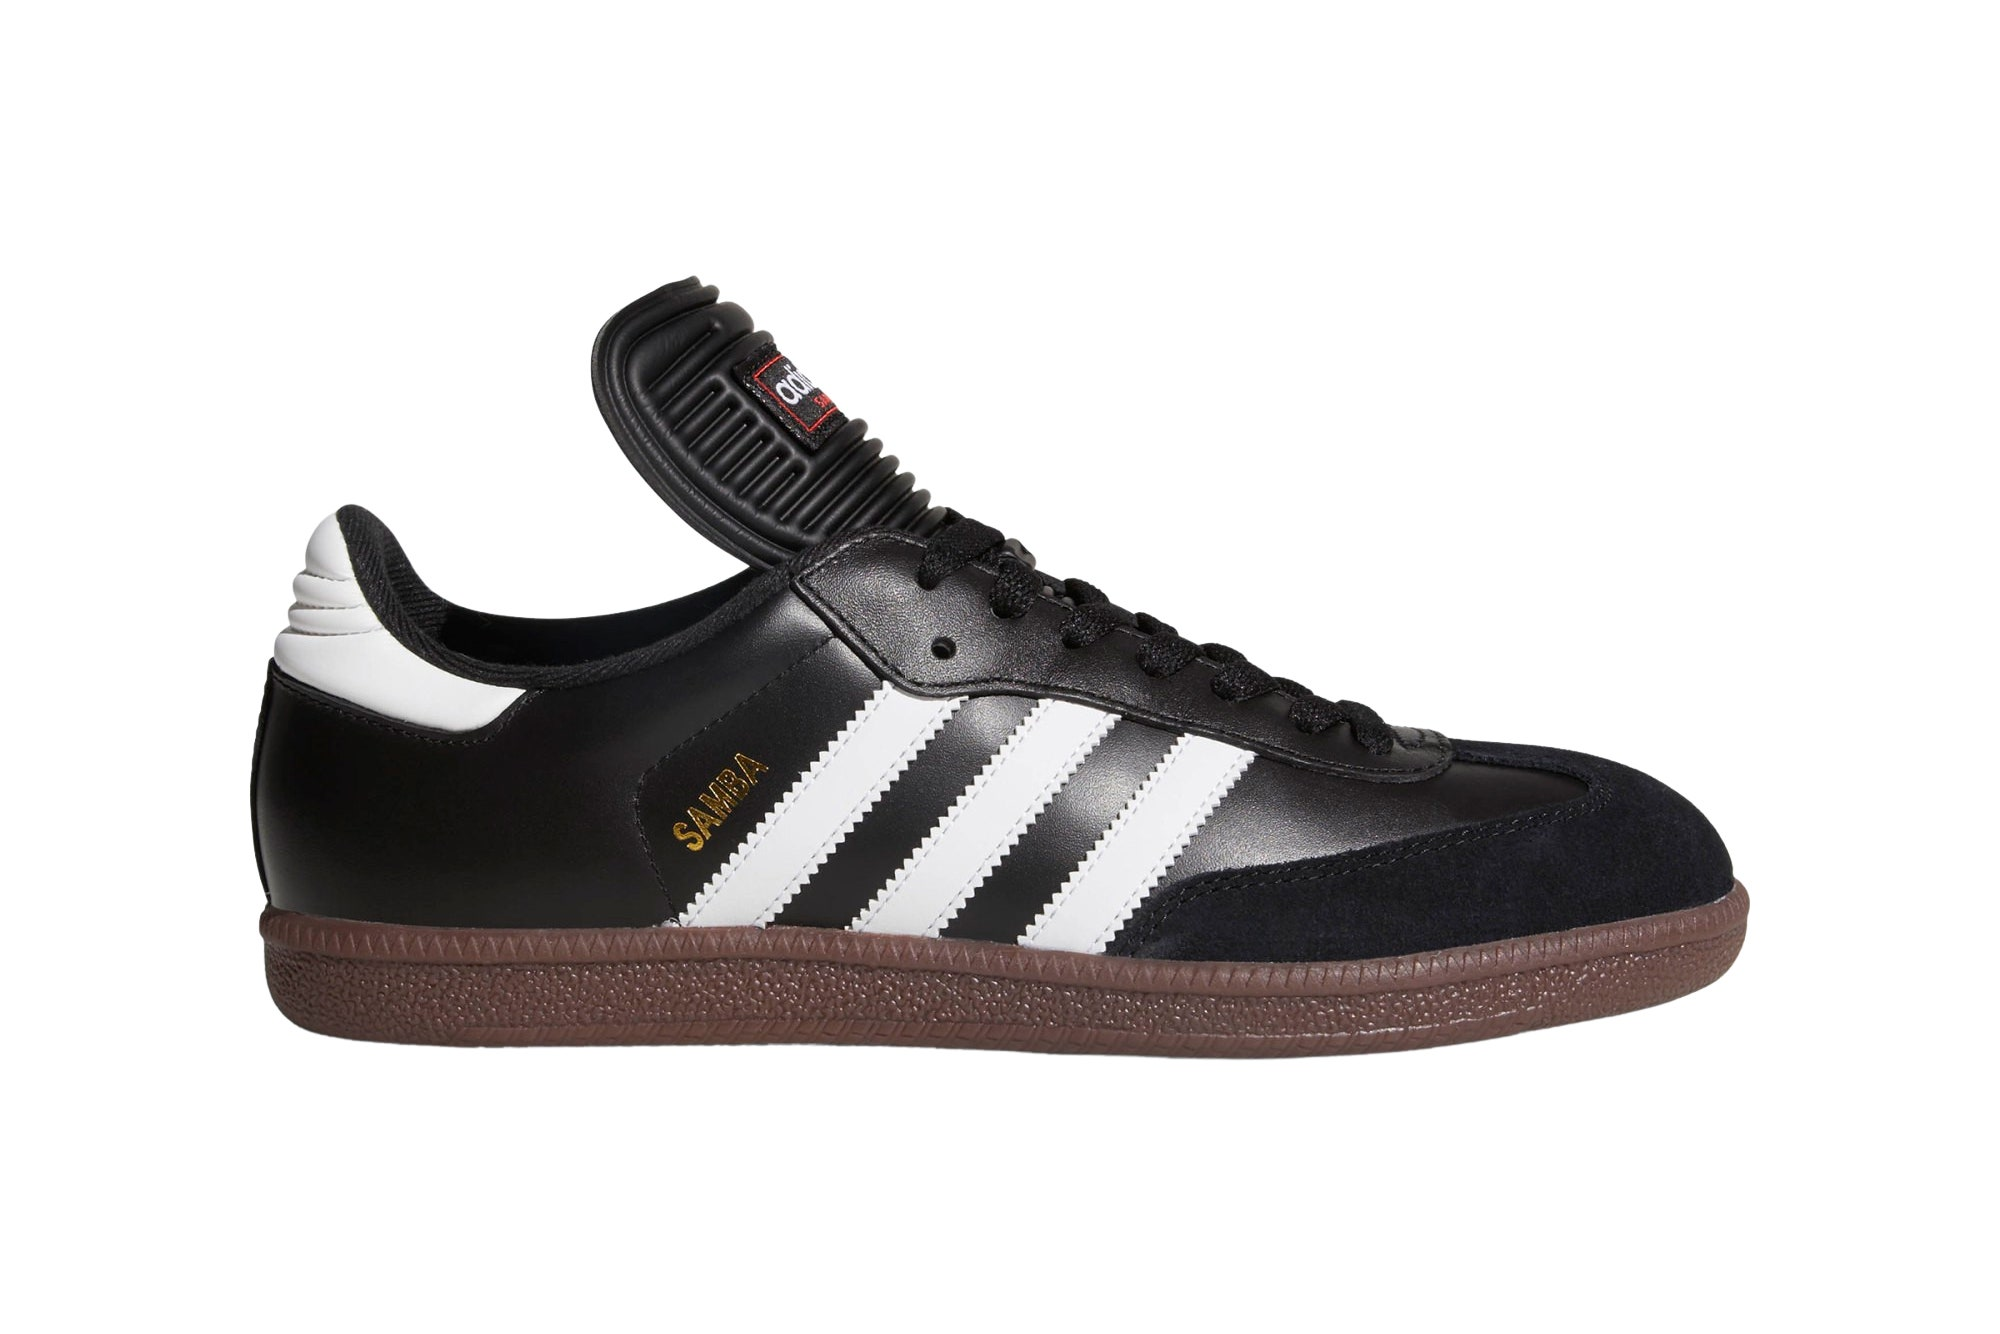 Samba® Classic by Adidas, available on zappos.com for $59.99 Kaia Gerber Shoes Exact Product